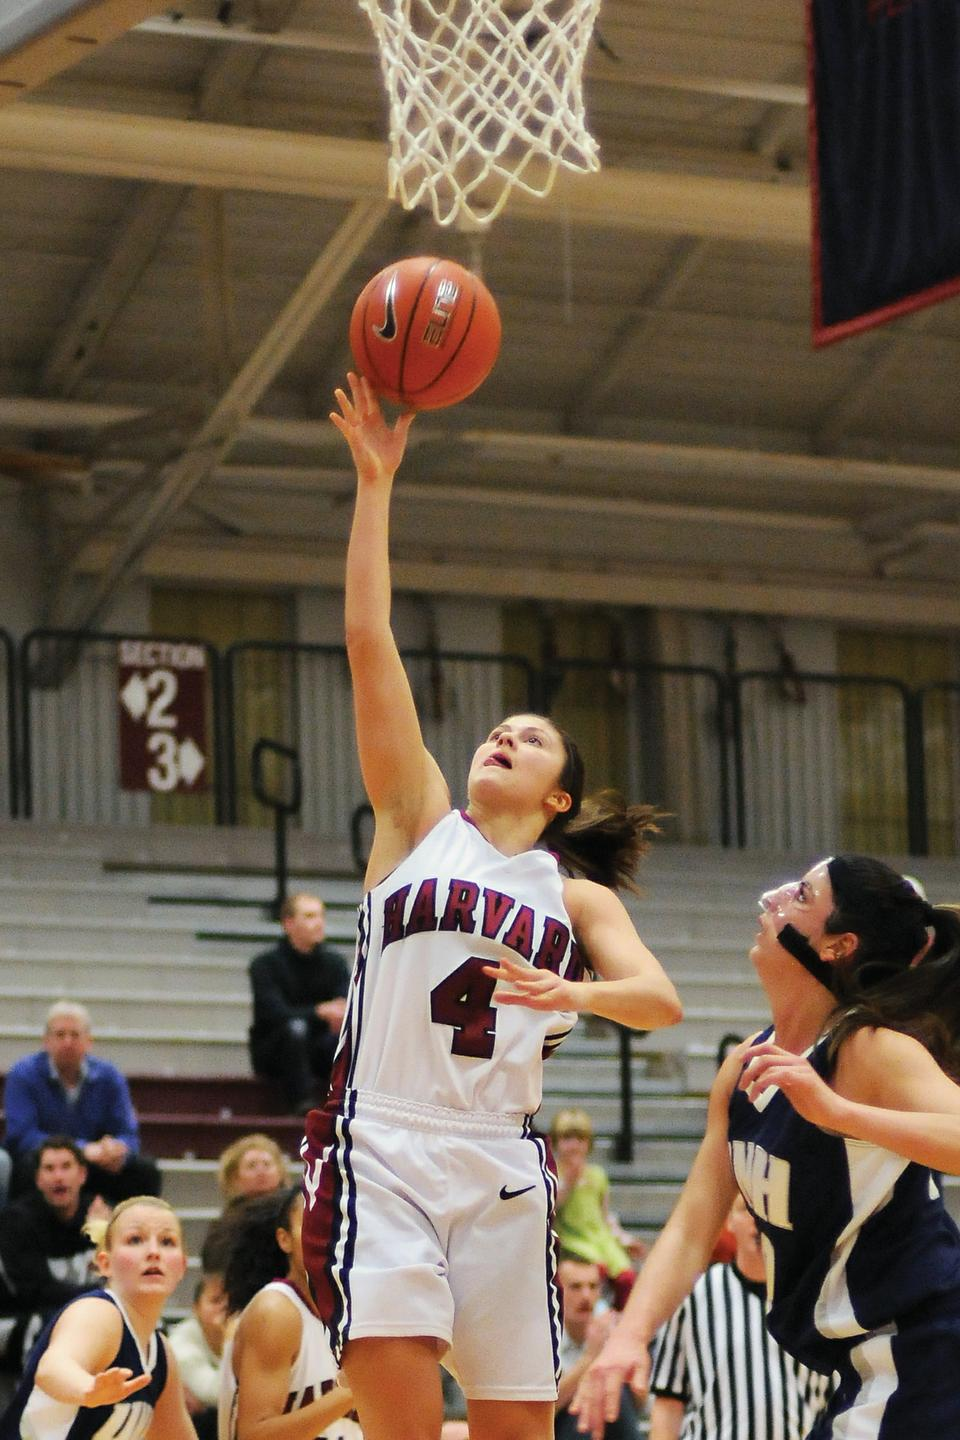 Brogan Berry finished the win with 22 points, the most any Crimson women's player has scored in a game this season.. The junior point guard also contributed four rebounds, five assists, and four steals.